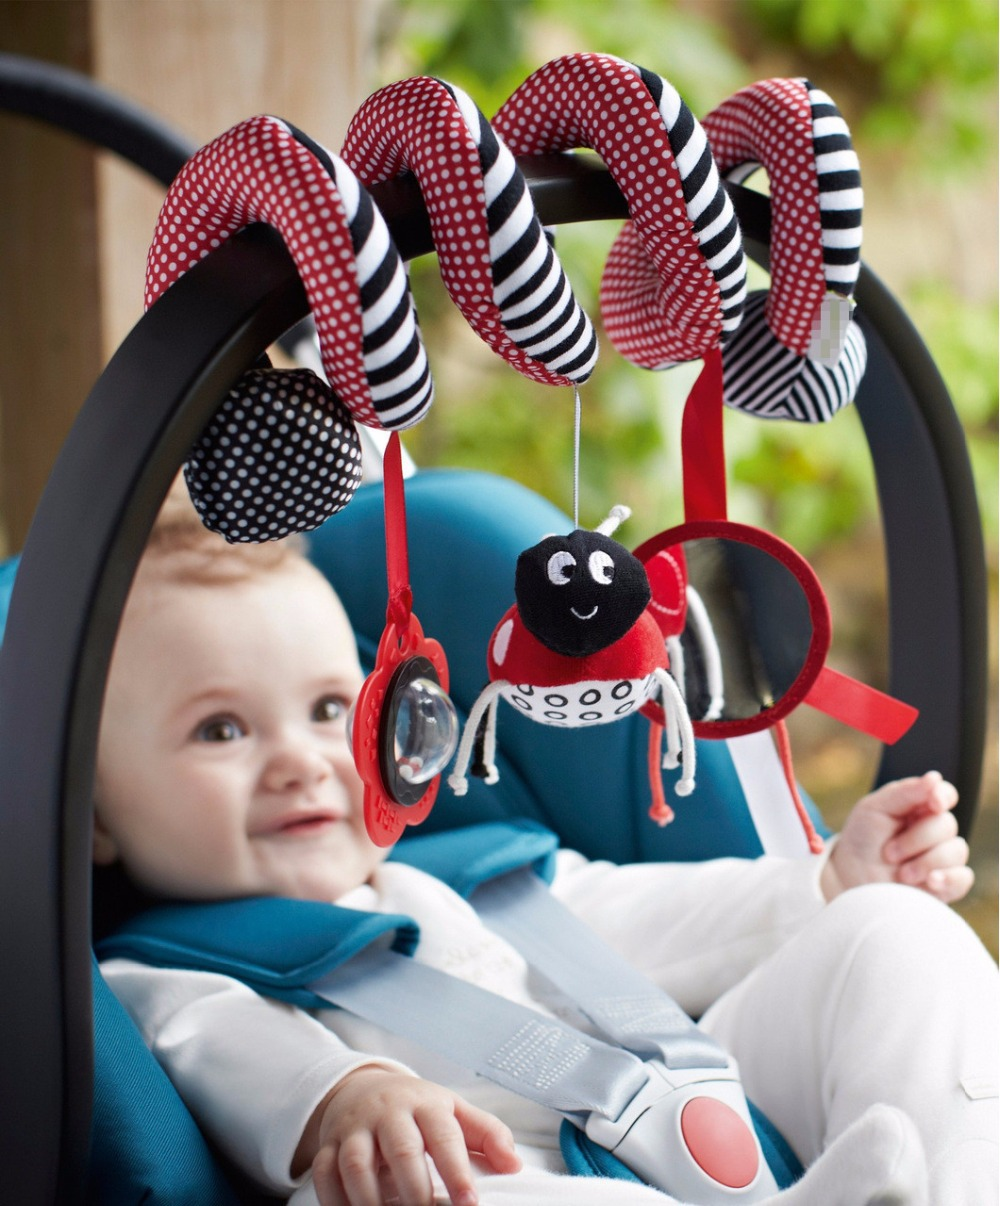 Hanging Toy-Baby Infant Rattle Toys Stroller Car Seat Crib Travel Activity IT